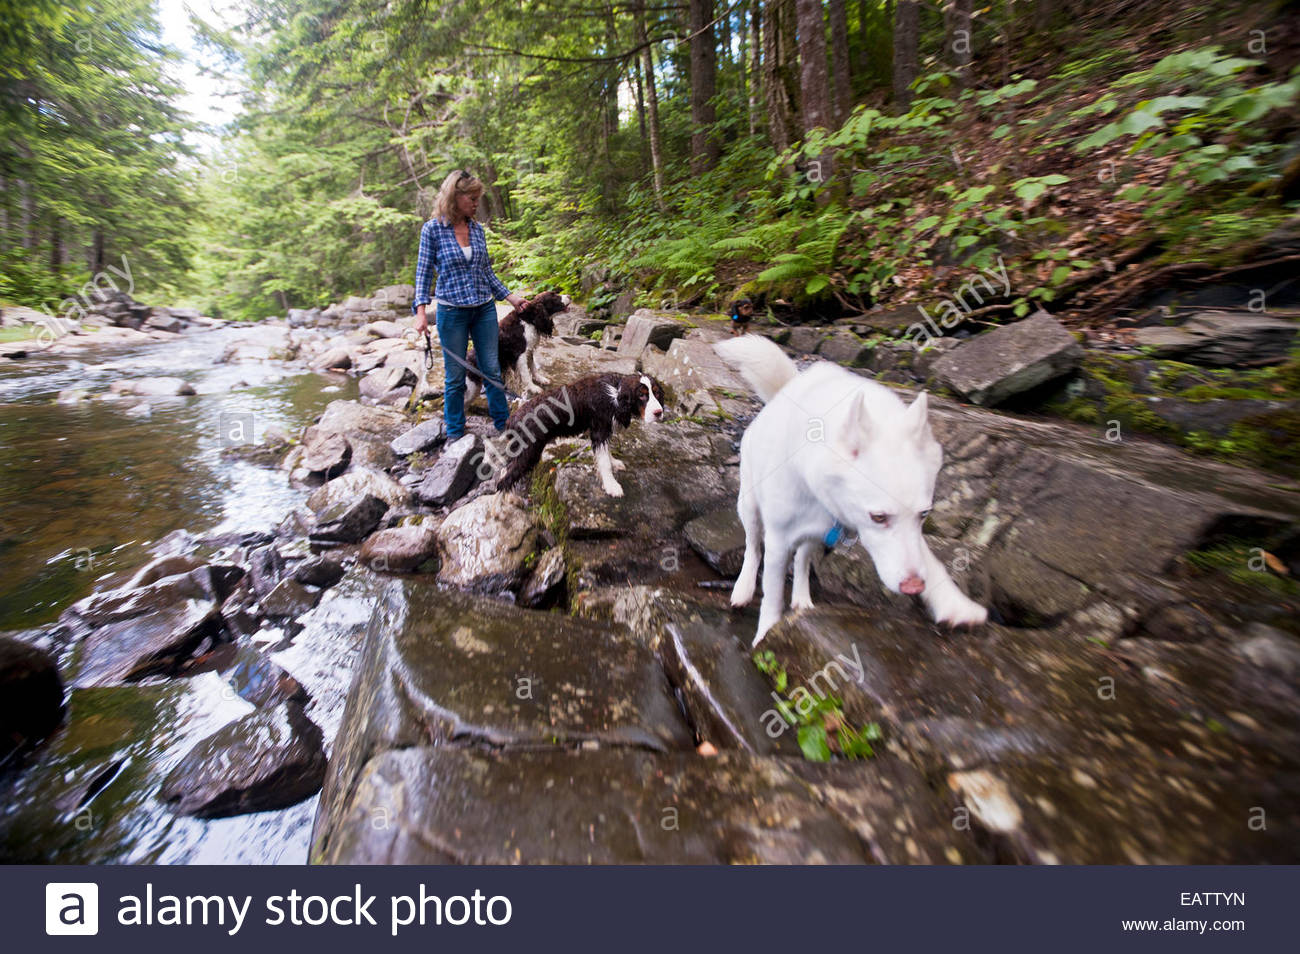 A woman and dogs walking in a forest on a shallow, rocky,  river bed. - Stock Image